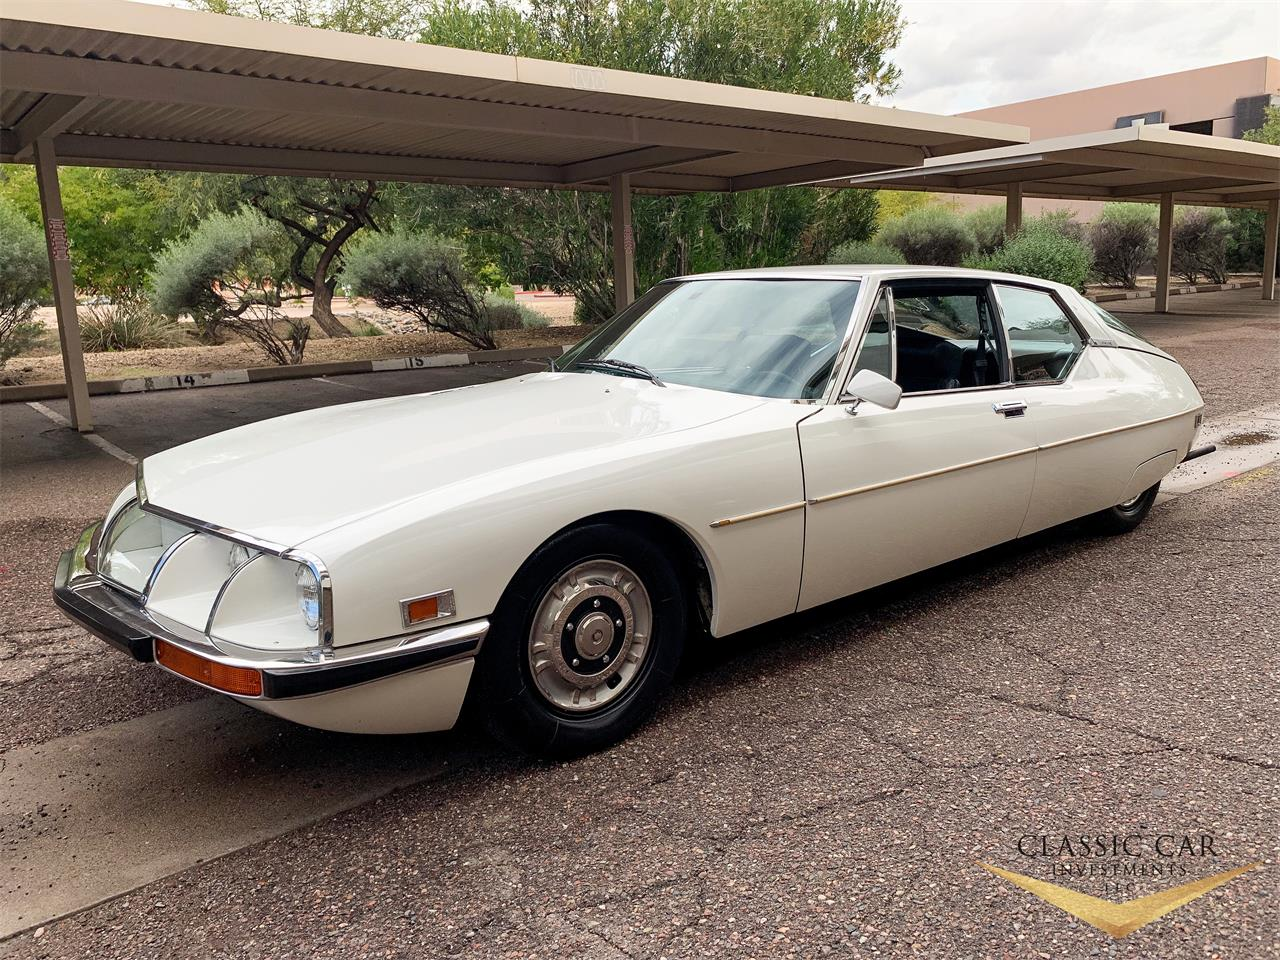 Large Picture of Classic 1972 Citroen SM located in Scottsdale Arizona - $53,500.00 Offered by Classic Car Investments LLC - P667